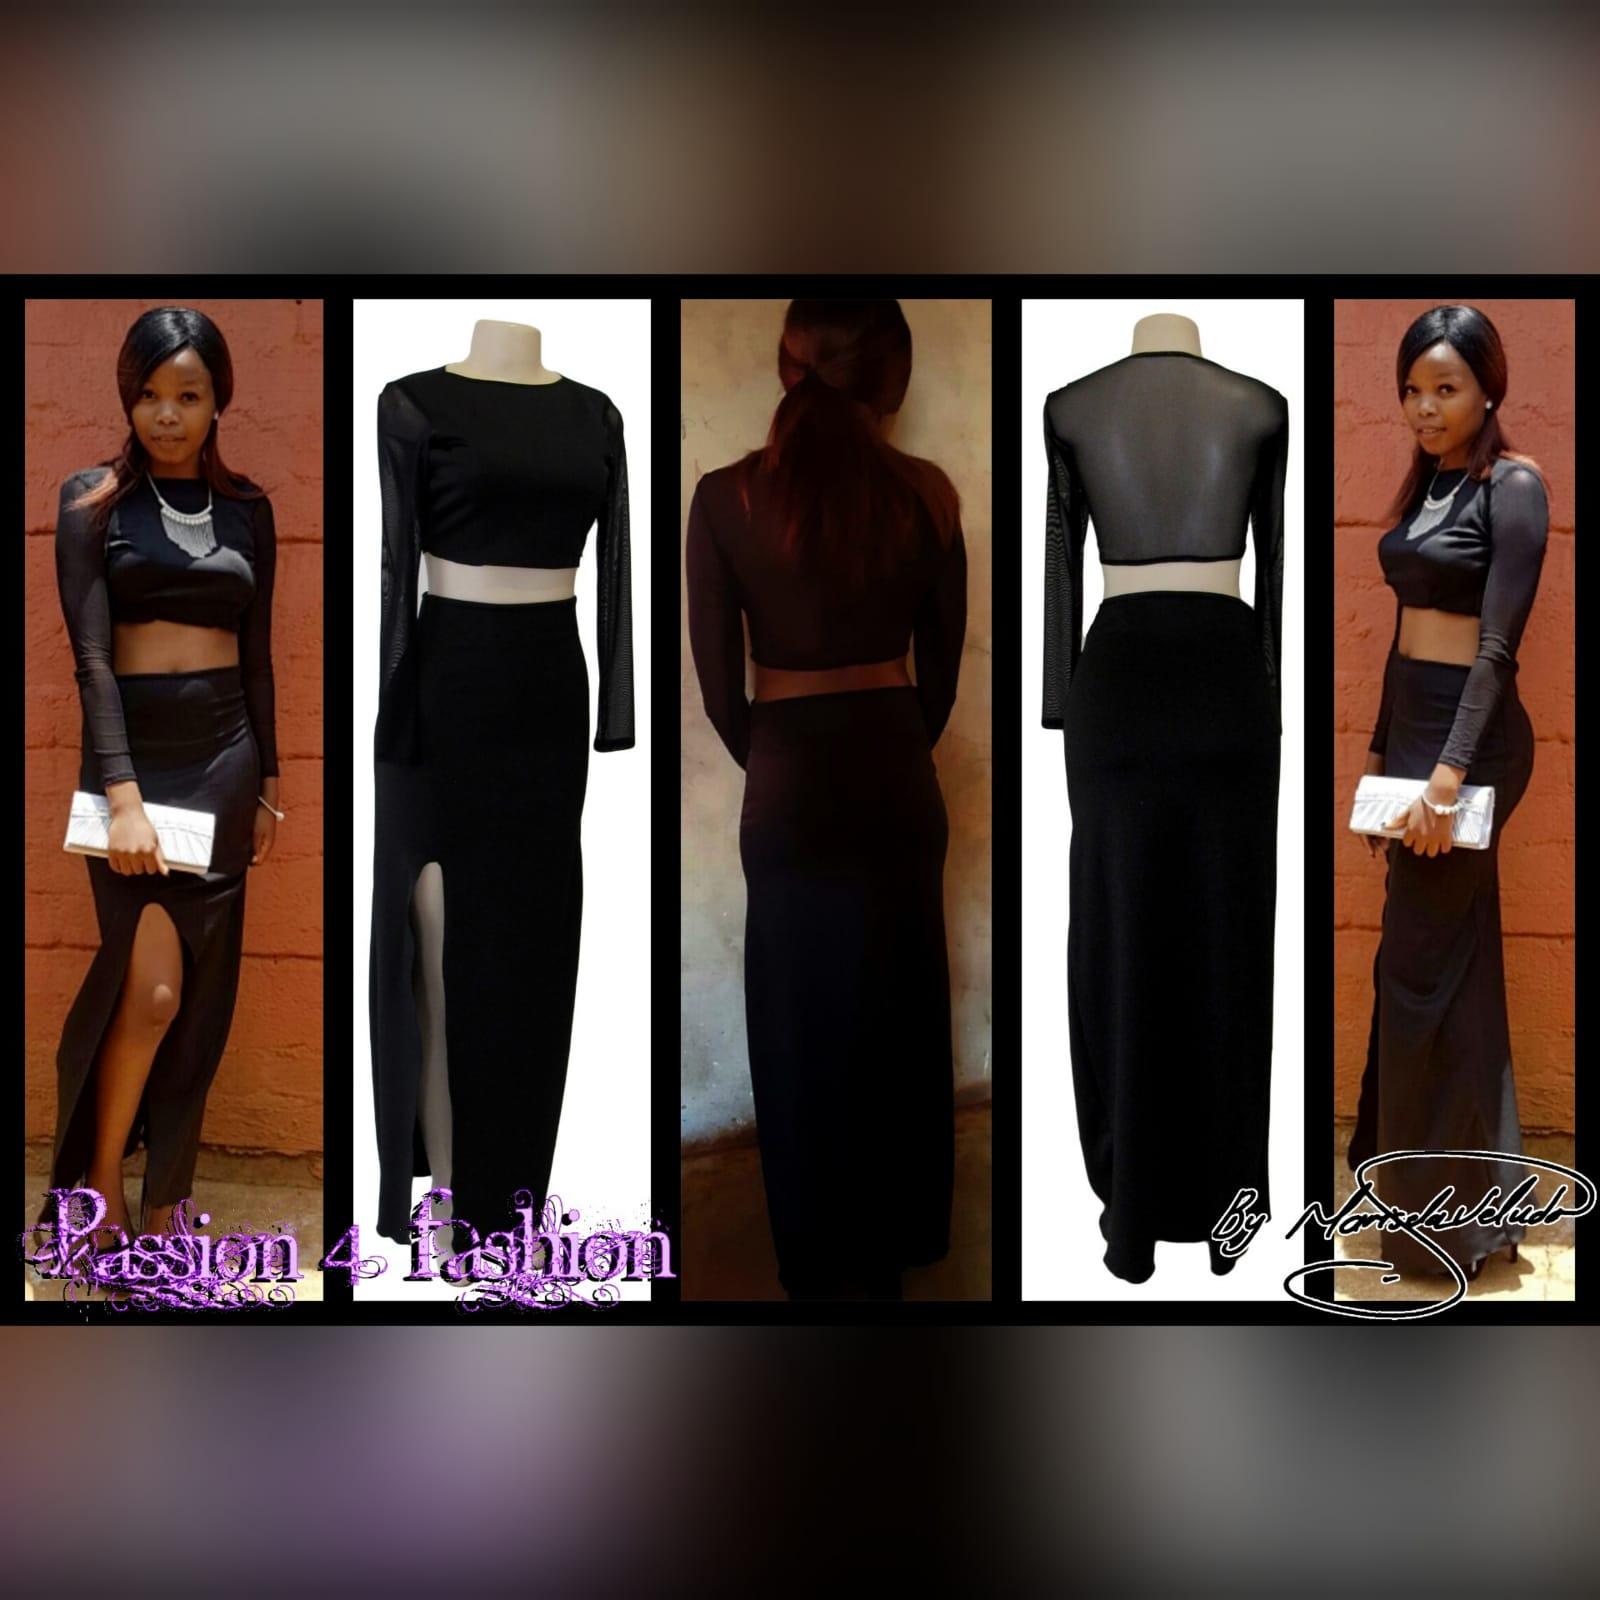 Black 2 piece smart casual dress 5 black 2 piece smart casual dress, with a crop top with long mesh sleeves, with a pencil long skirt with a slit